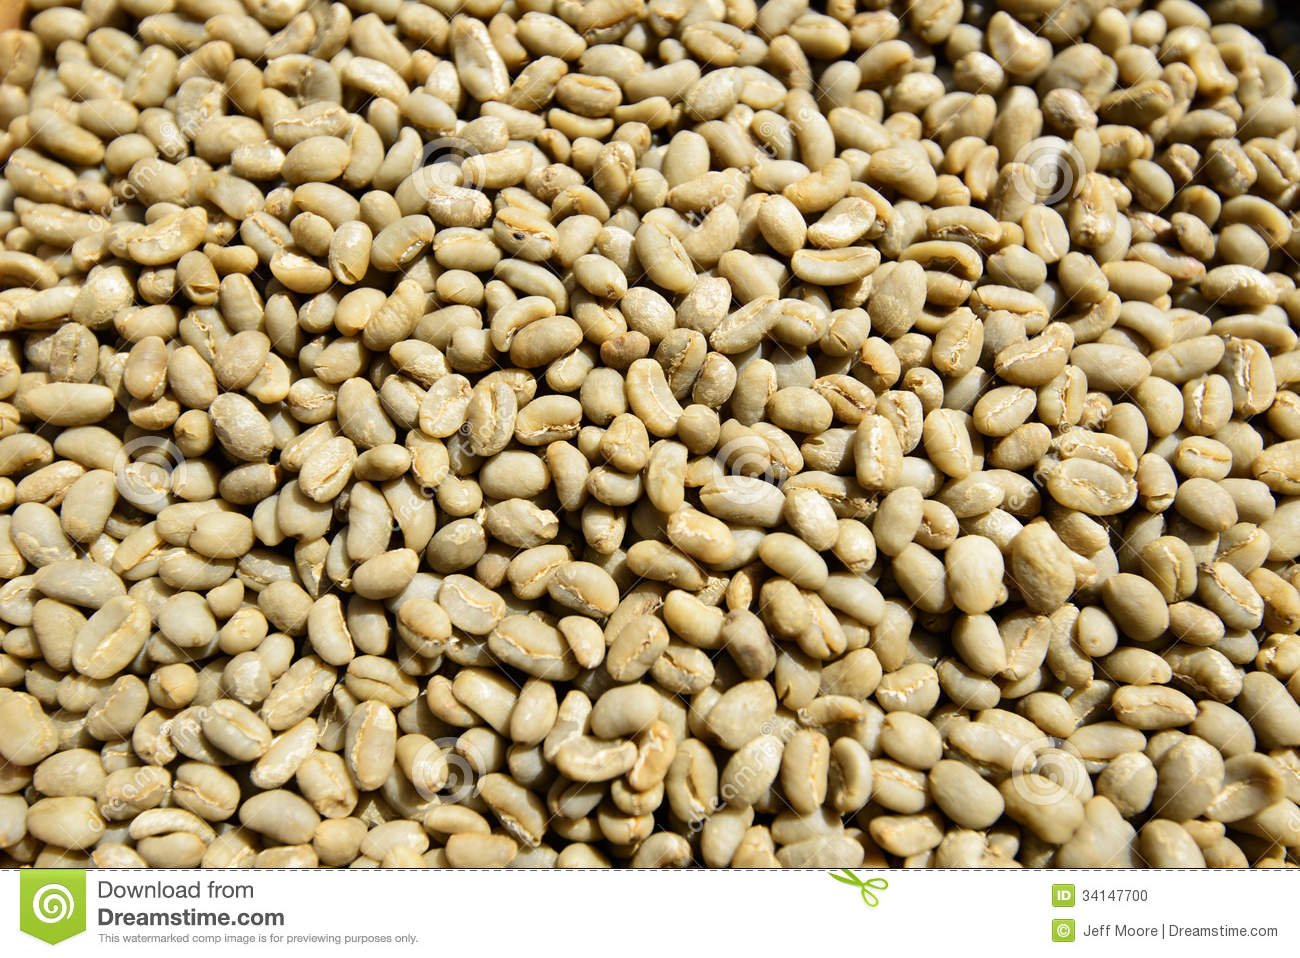 Unroasted Organic Arabica Coffee Beans Green Unroasted Coffee Beans Stock Photo Image 34147700